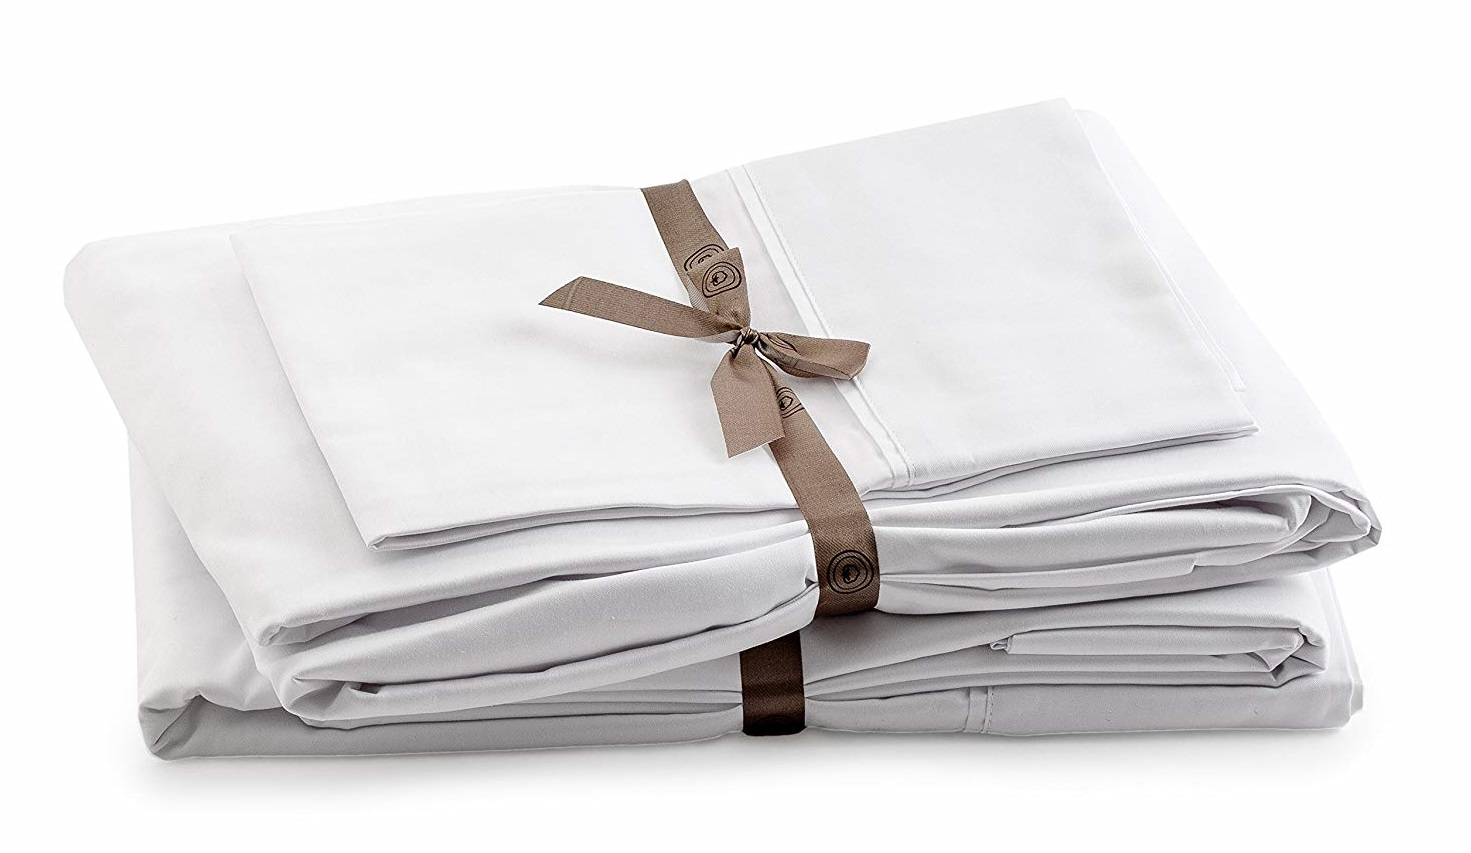 Image of Peru Pima Cotton Sheets - Microfiber Sheets vs Cotton